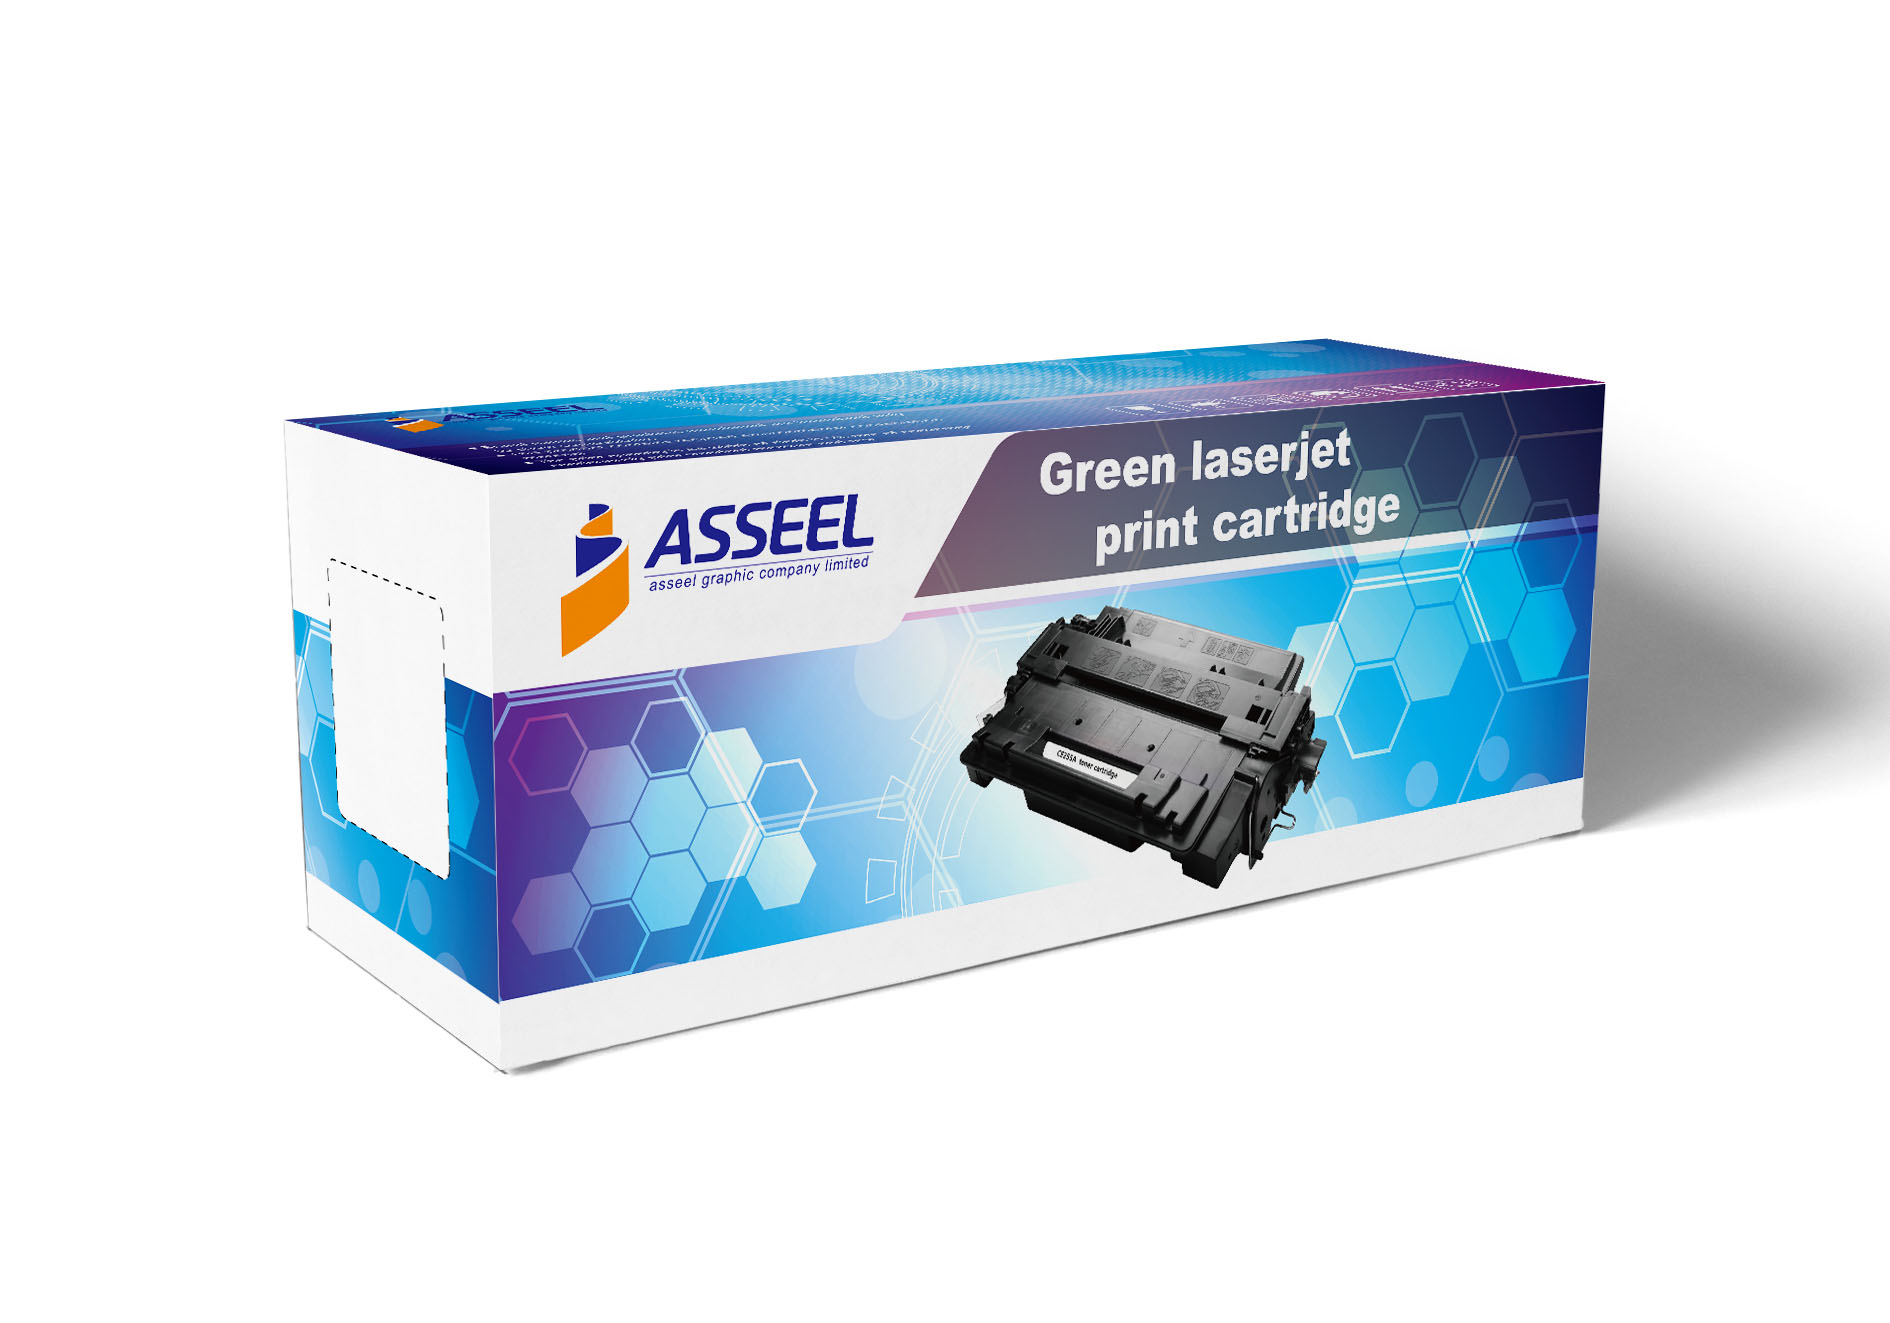 Asseel toner cartridge box (1)